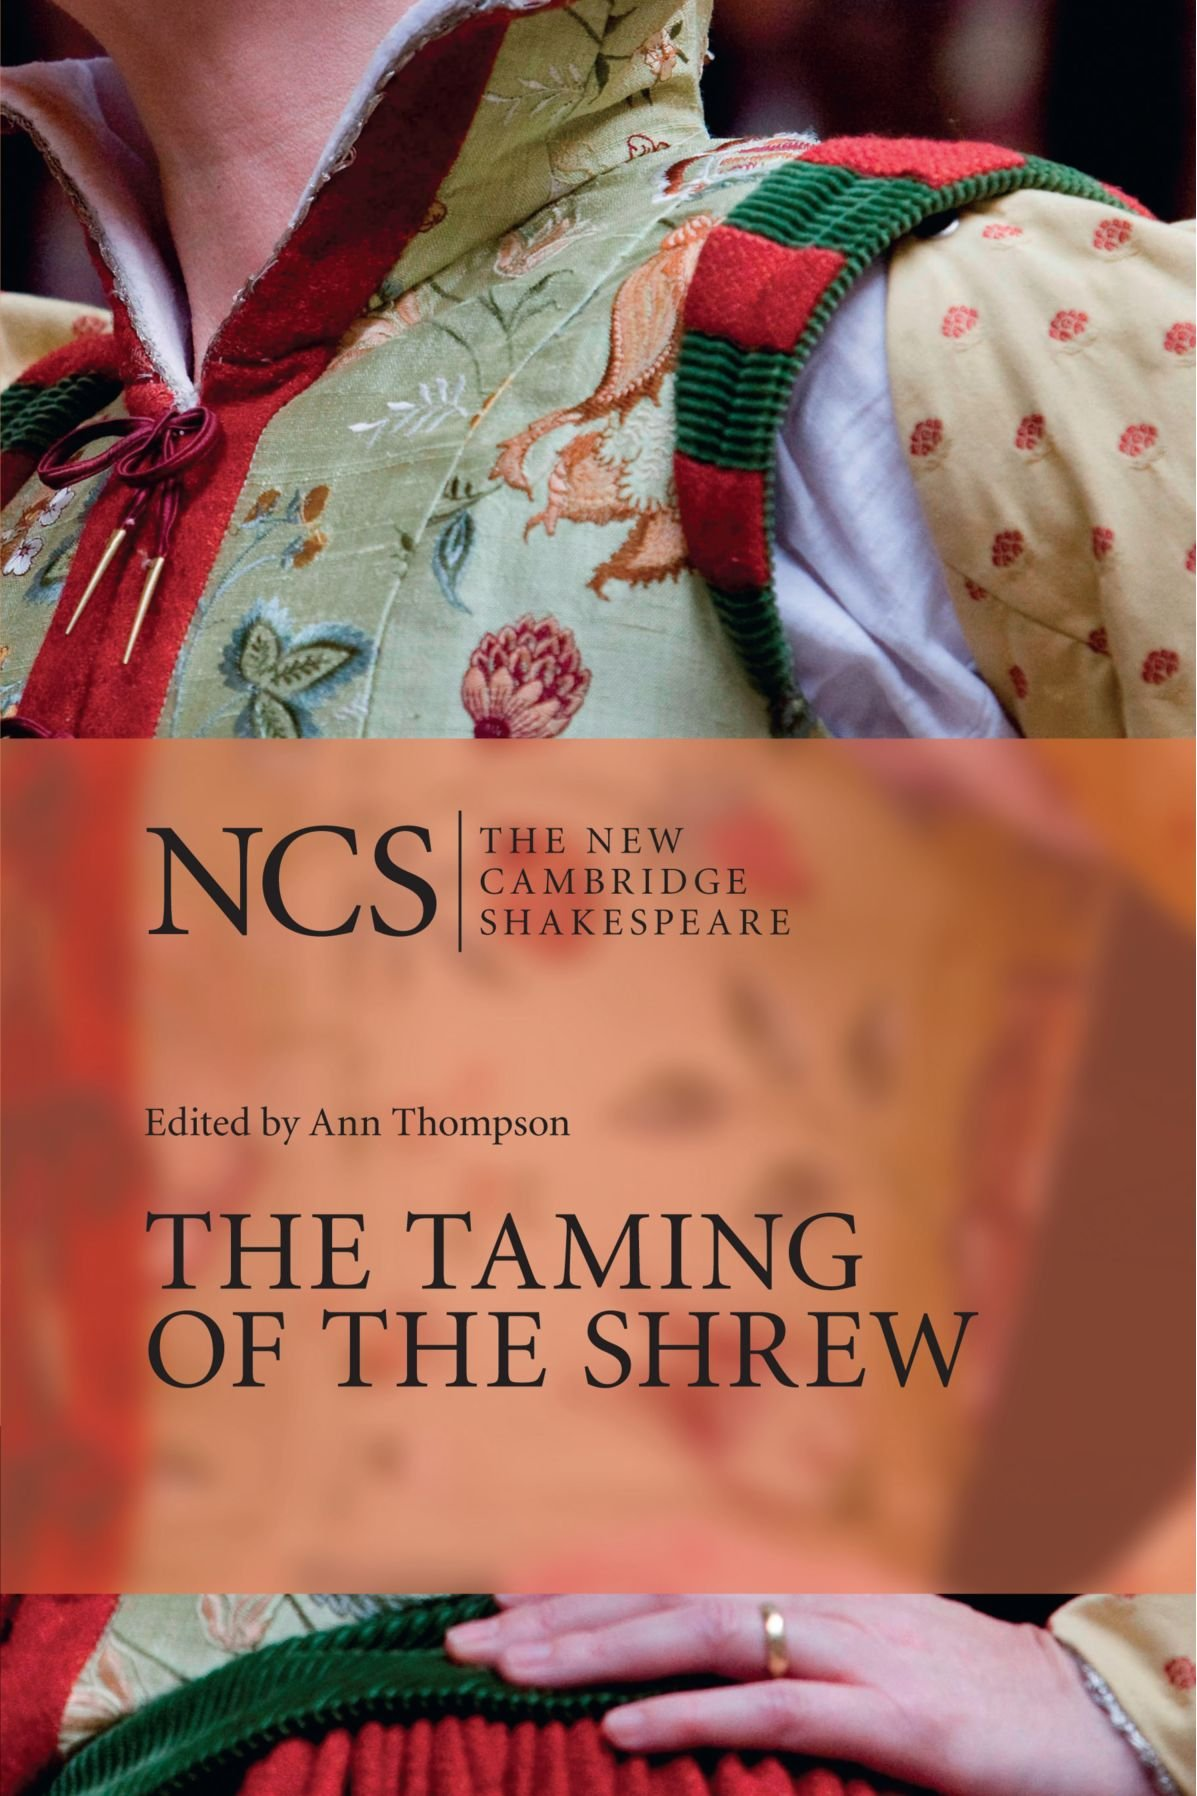 the taming of the shrew the new cambridge shakespeare co the taming of the shrew the new cambridge shakespeare co uk ann thompson 9780719577192 books